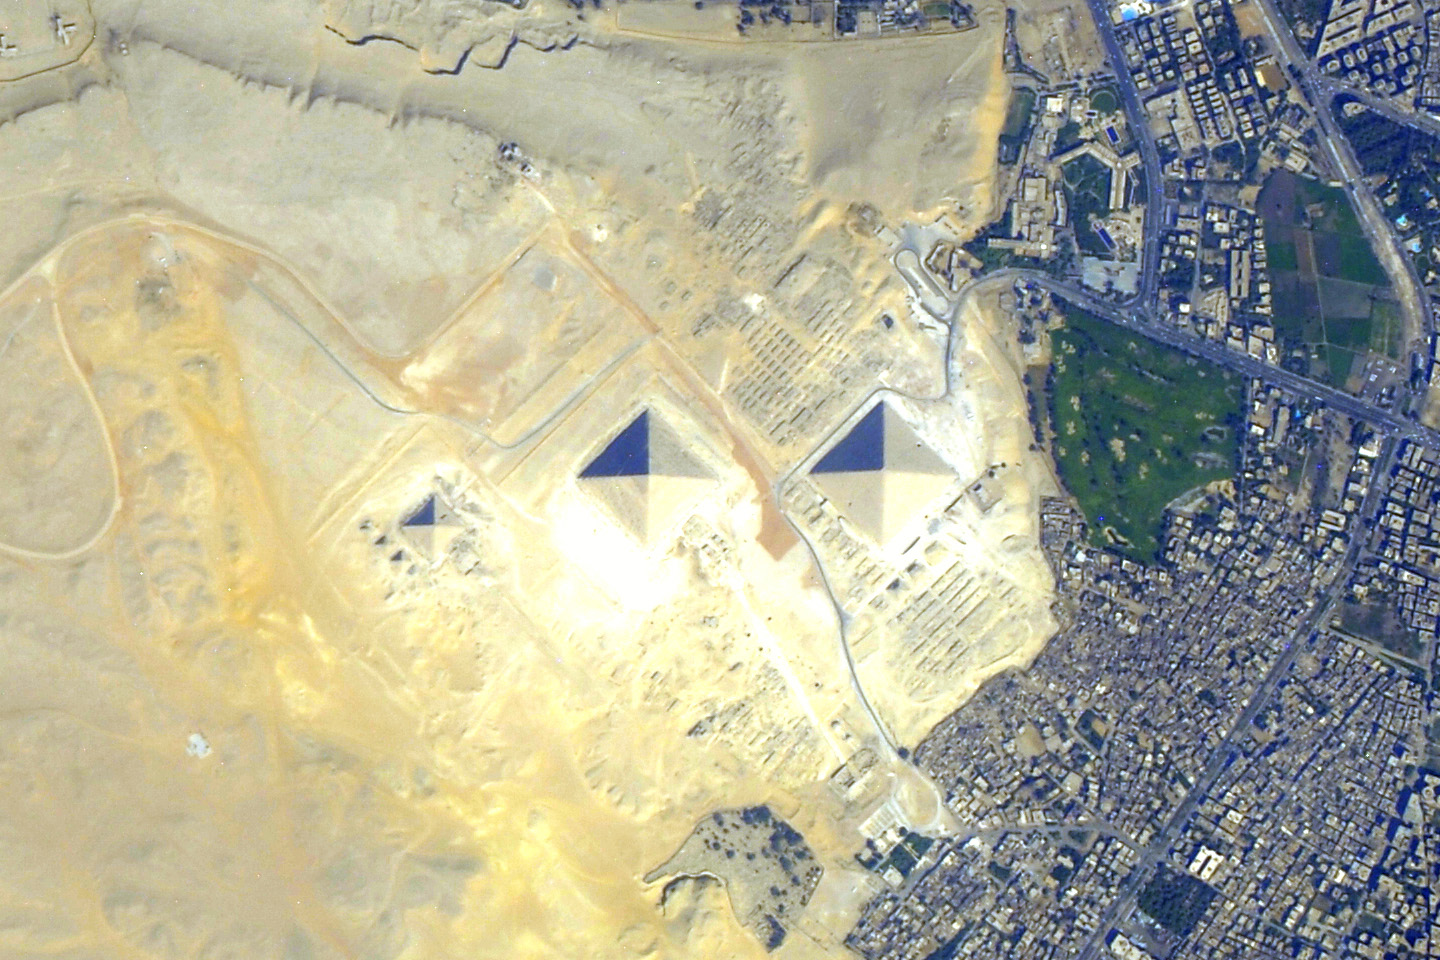 pyramids at giza egypt